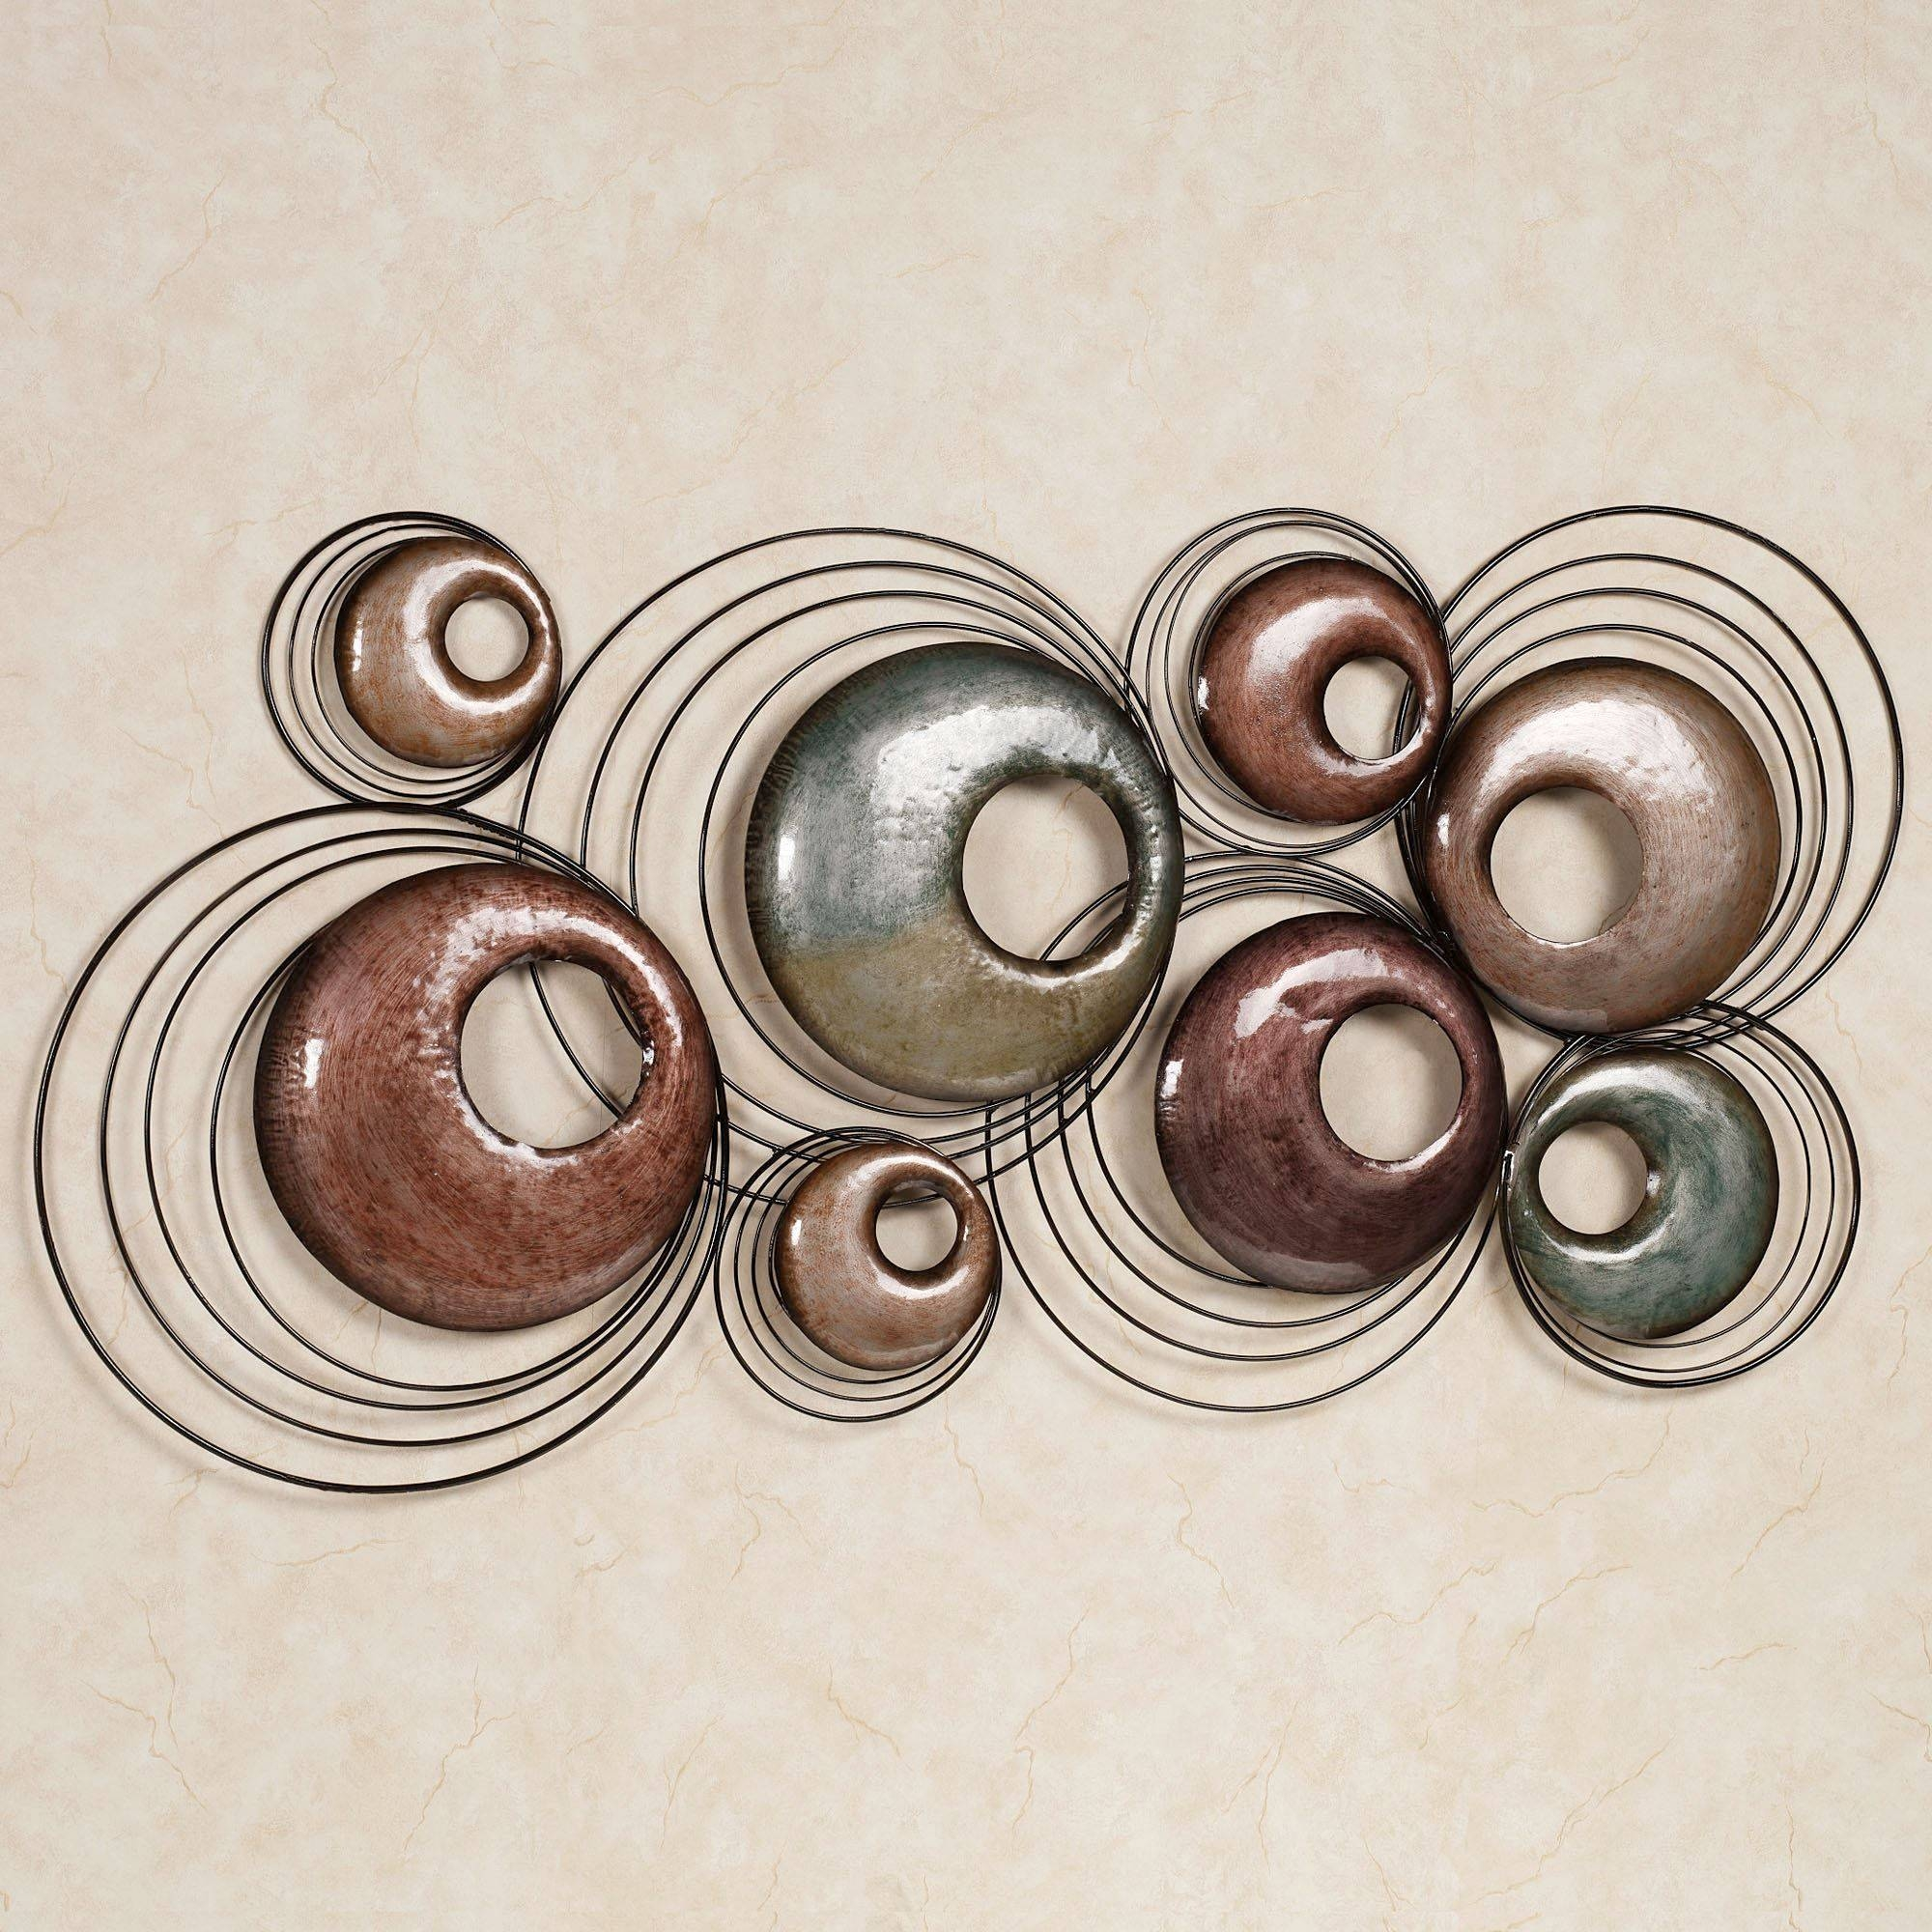 Echo Metal Wall Sculpture Art Intended For Recent Metal Wall Artwork Decor (View 7 of 20)